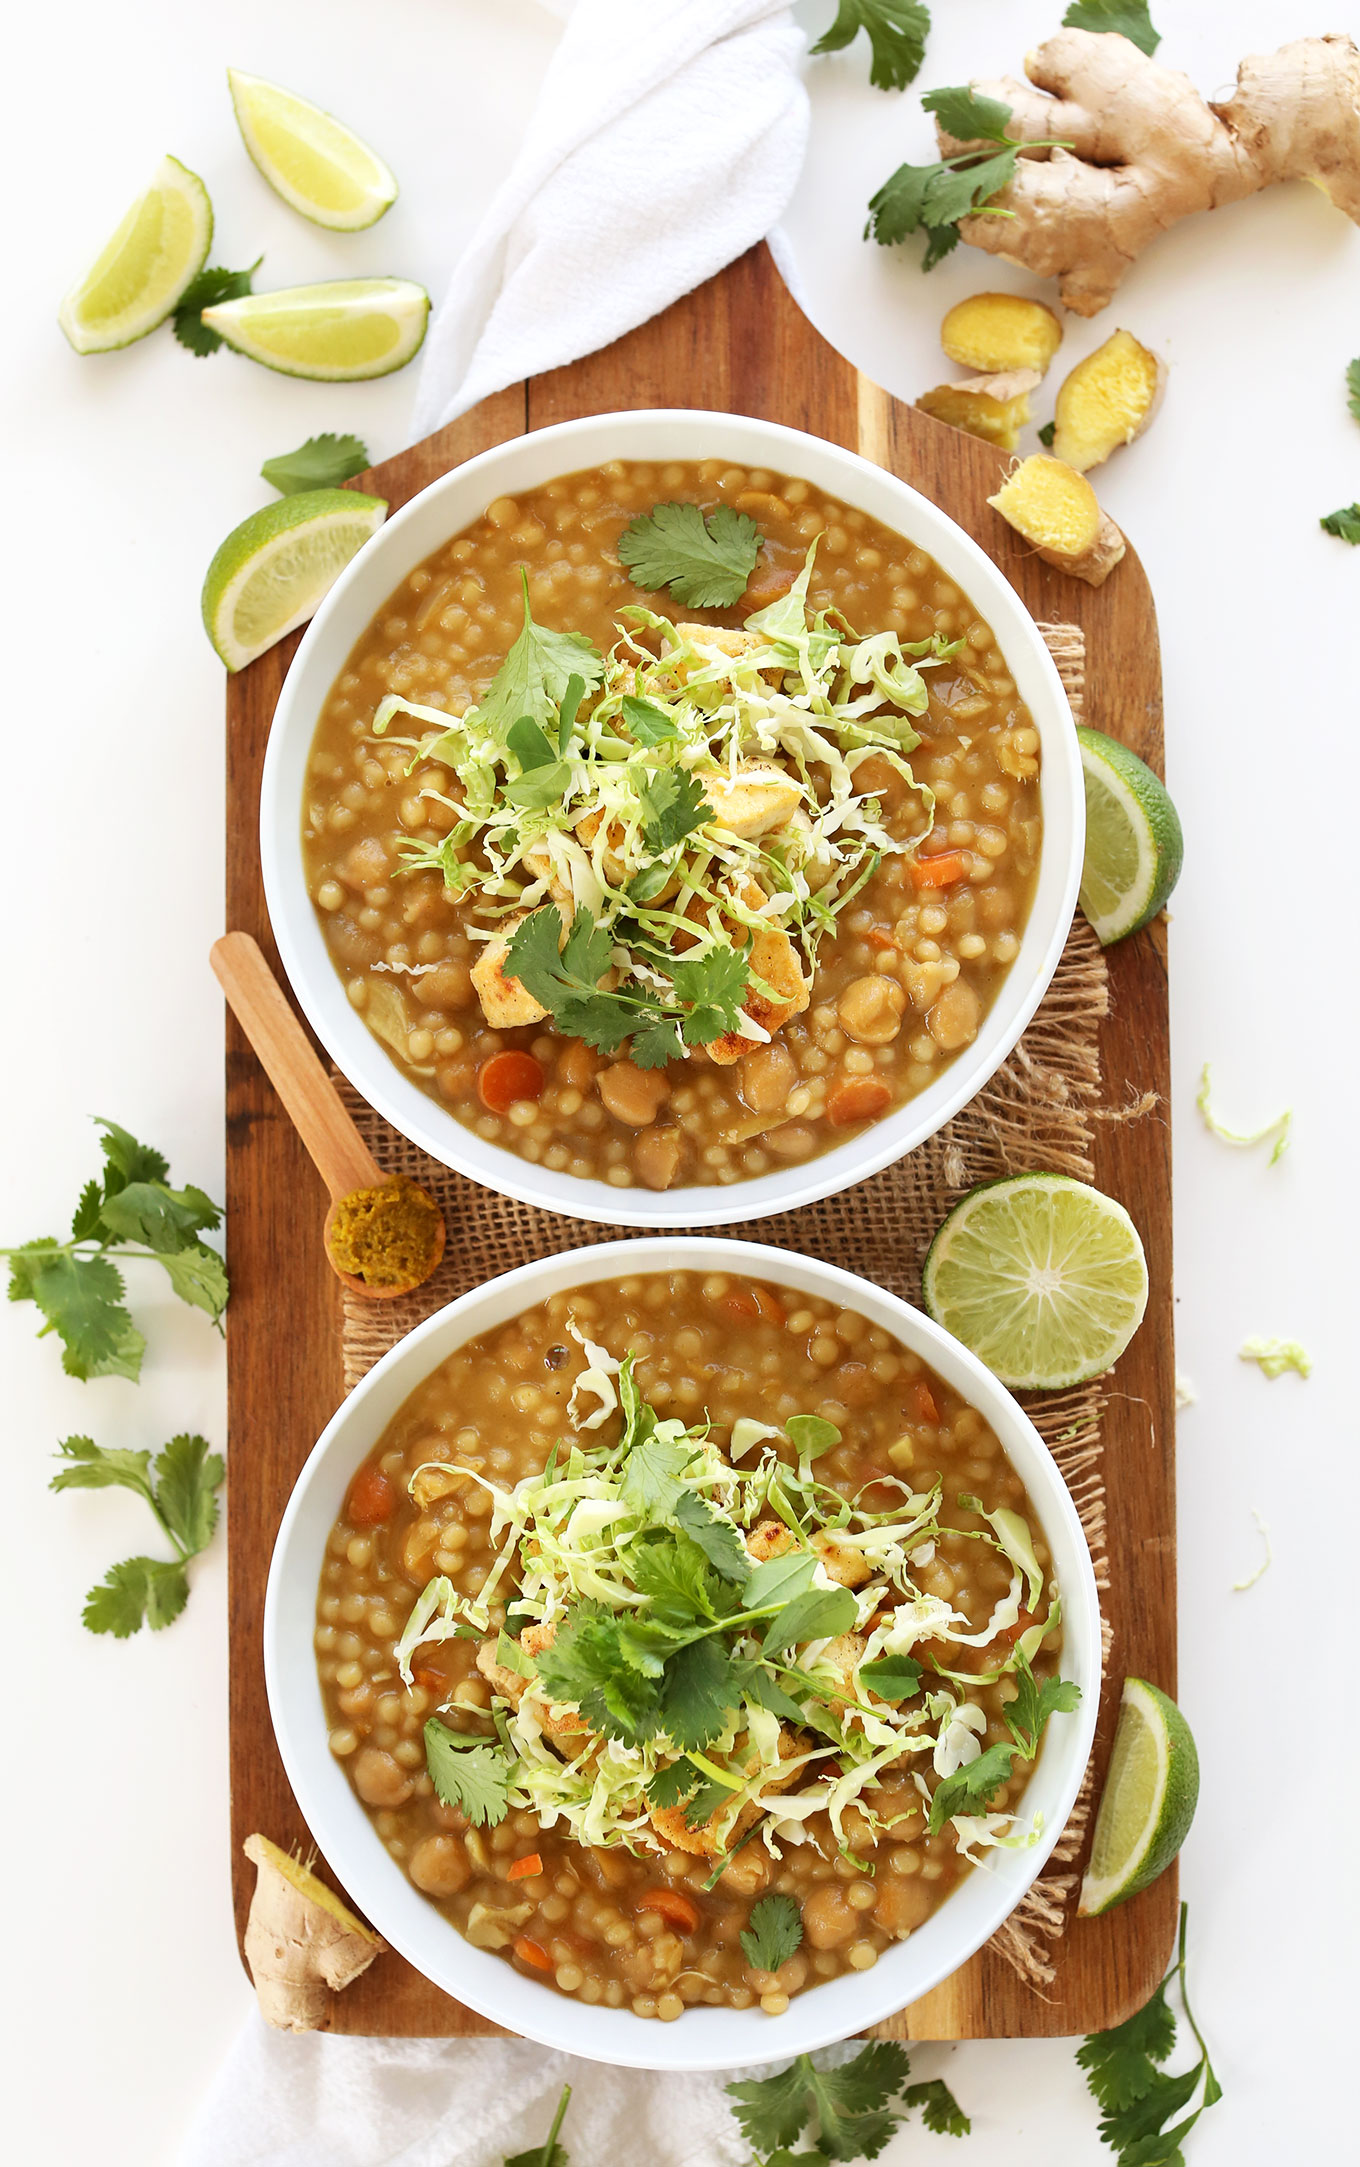 Bowls of Green Chickpea Curry with Israeli Couscous for a quick vegan dinner